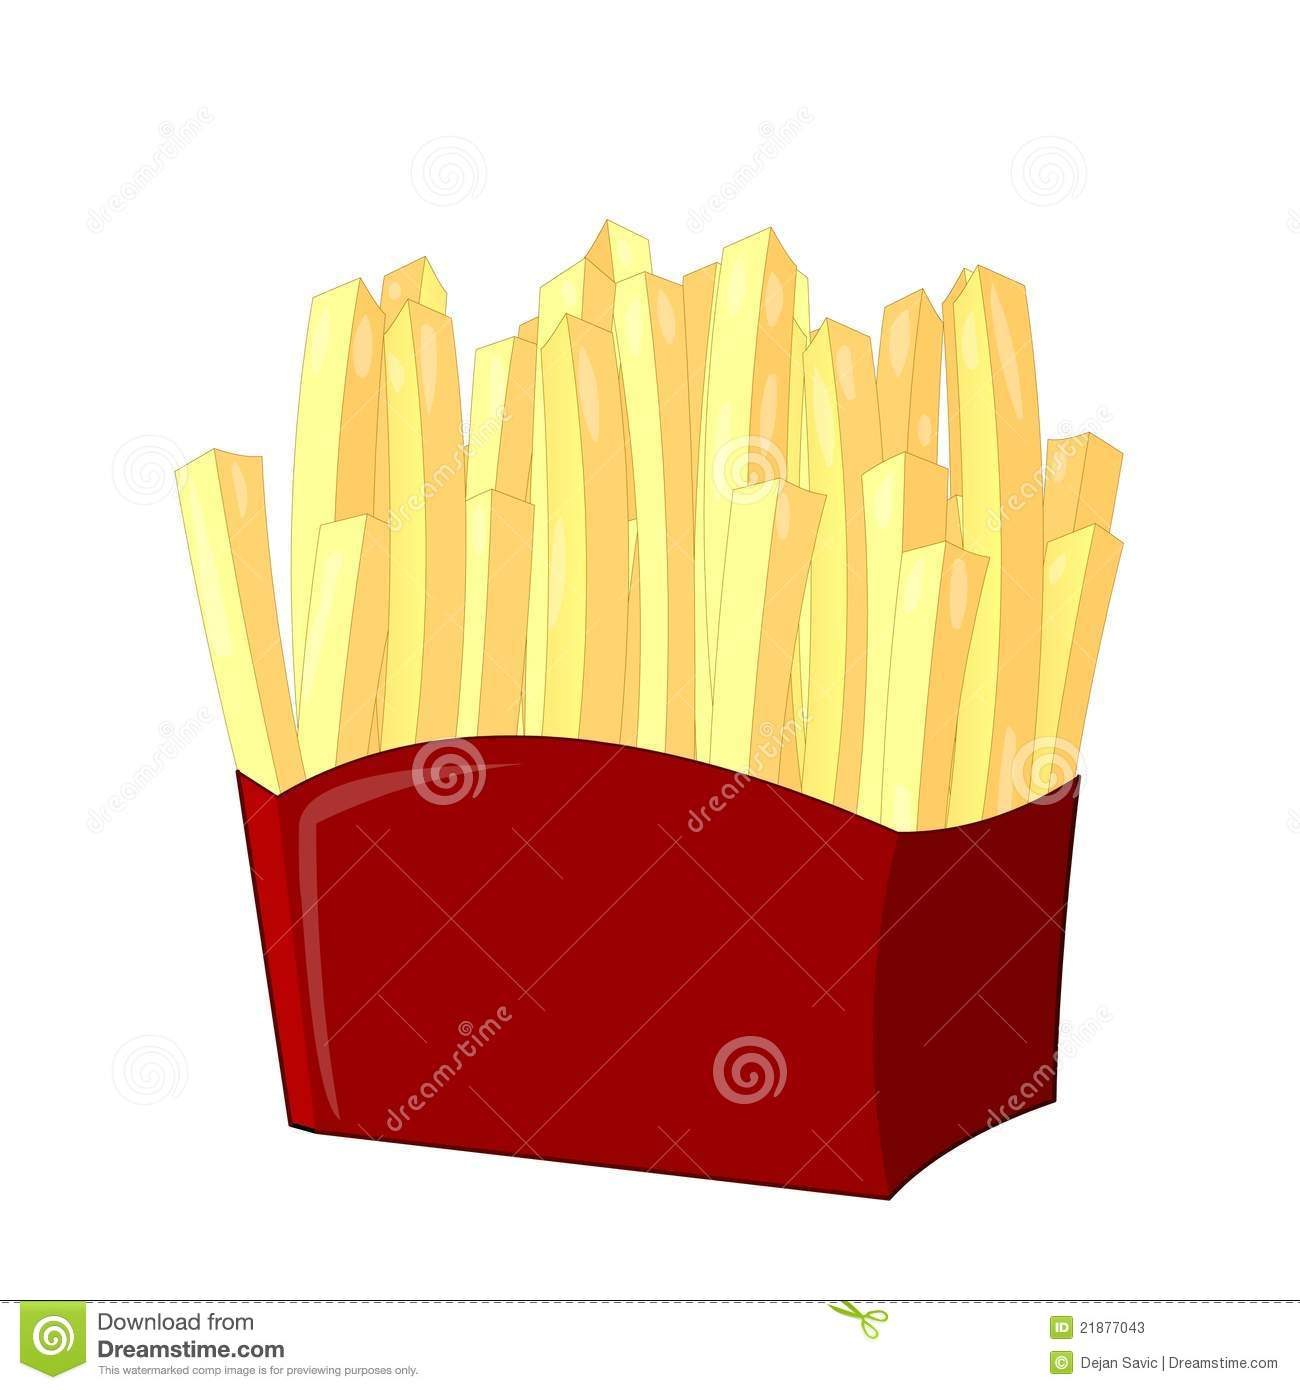 Download French fries stock illustration. Illustration of fries - 21877043